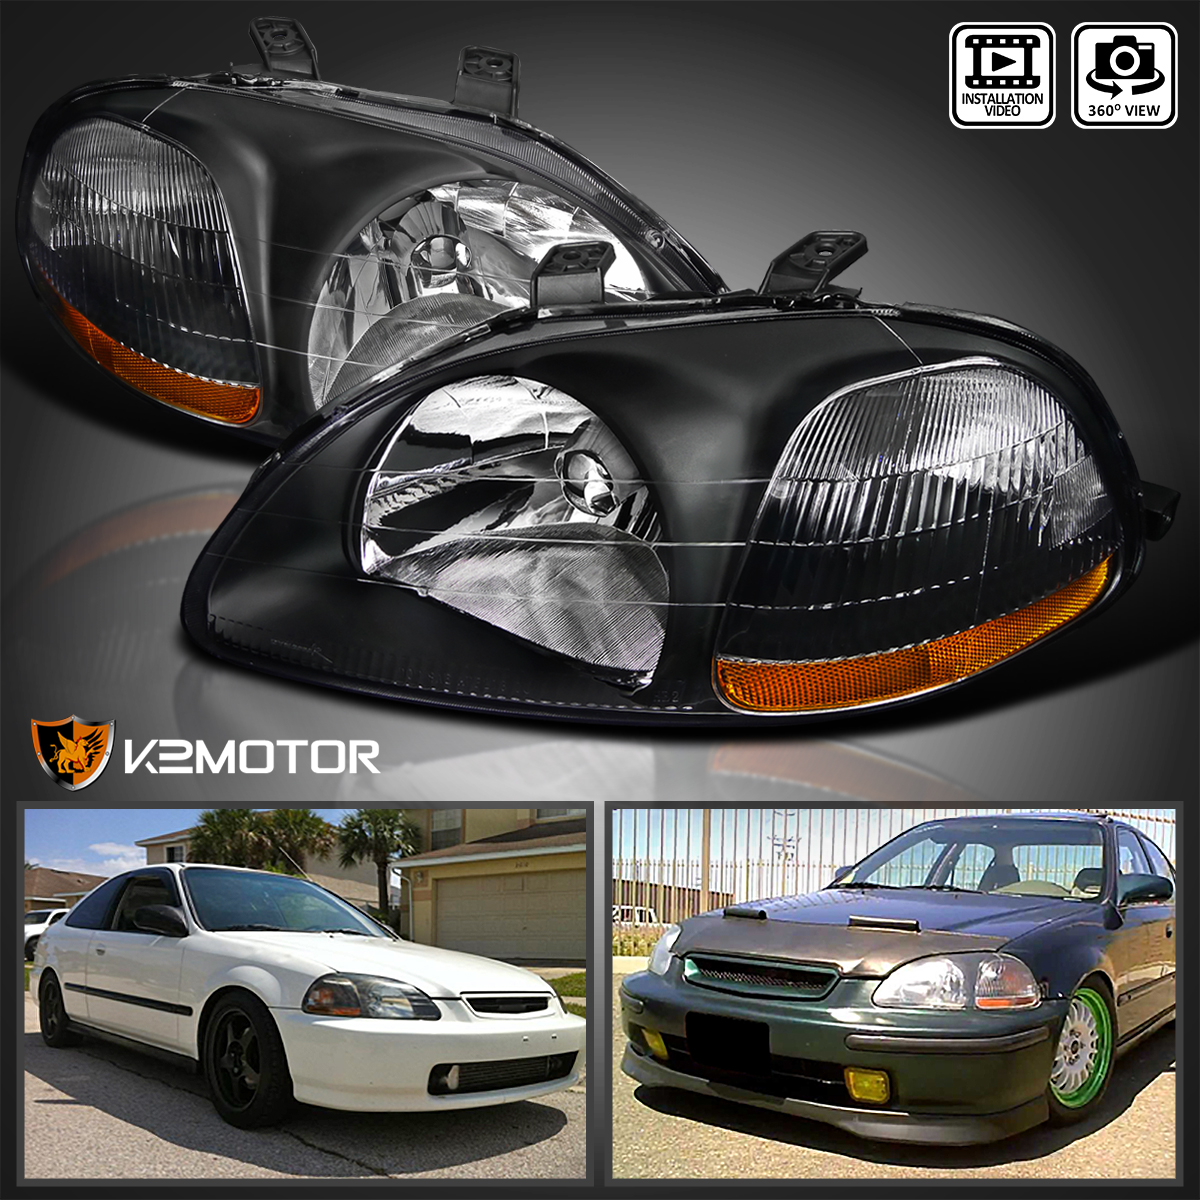 [JDM Black] For 1996 1998 Honda Civic DX EX LX Replacement Headlights  Left+Right